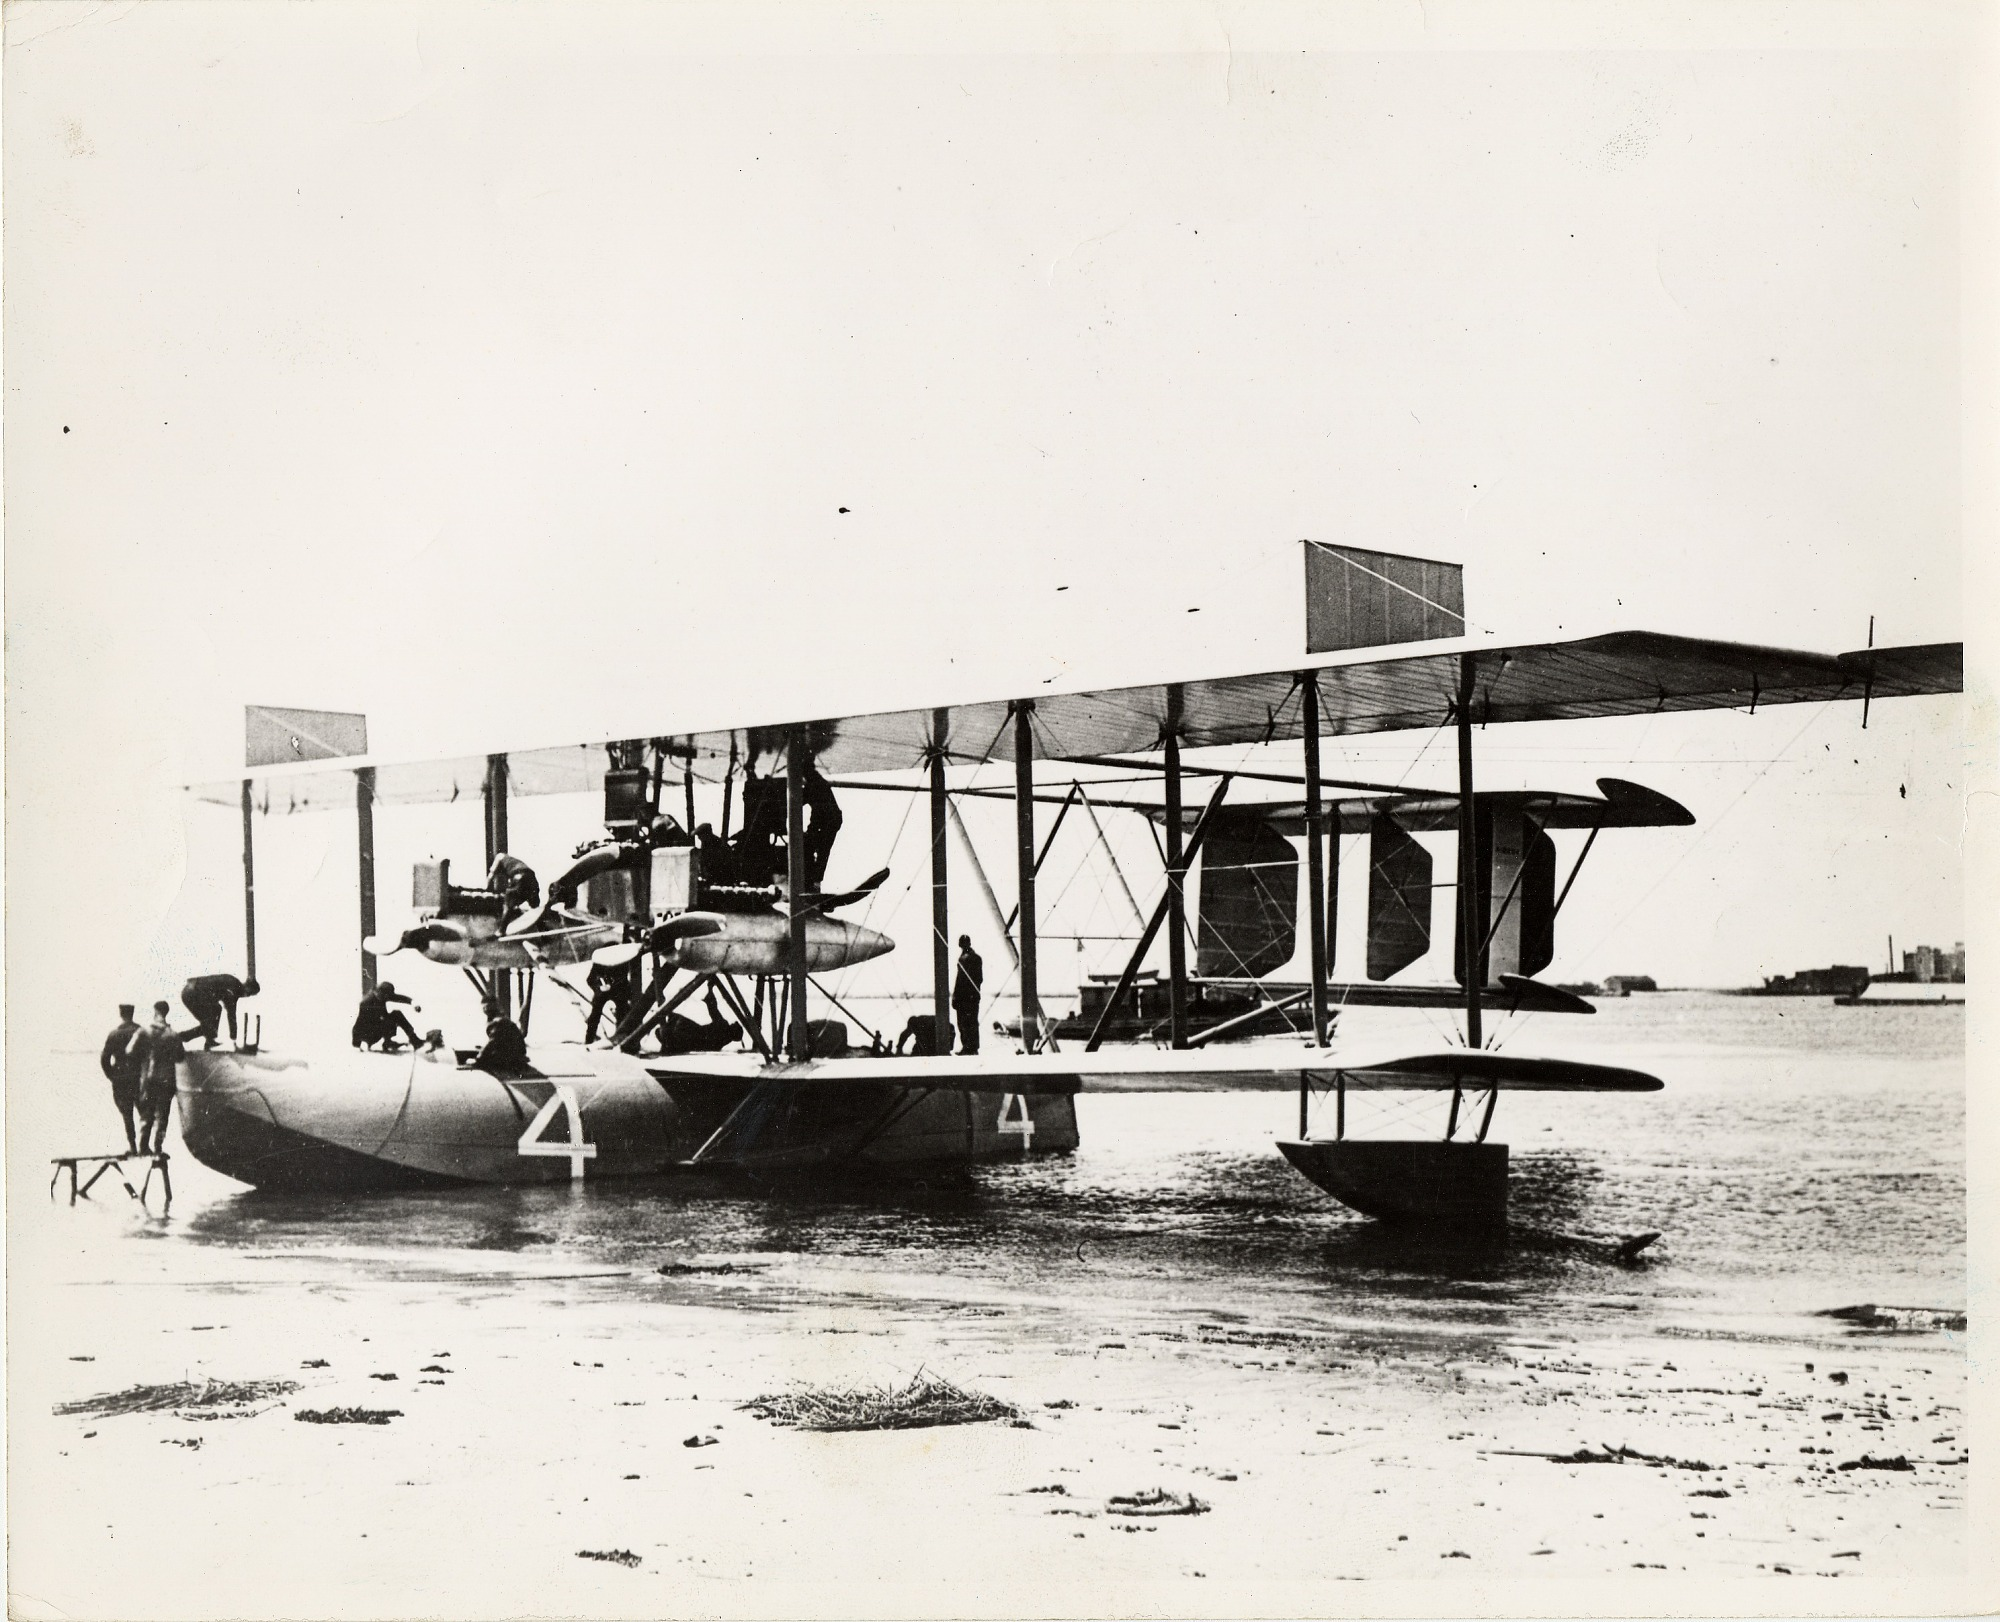 Curtiss NC-4 Design, Construction, and Testing Reports